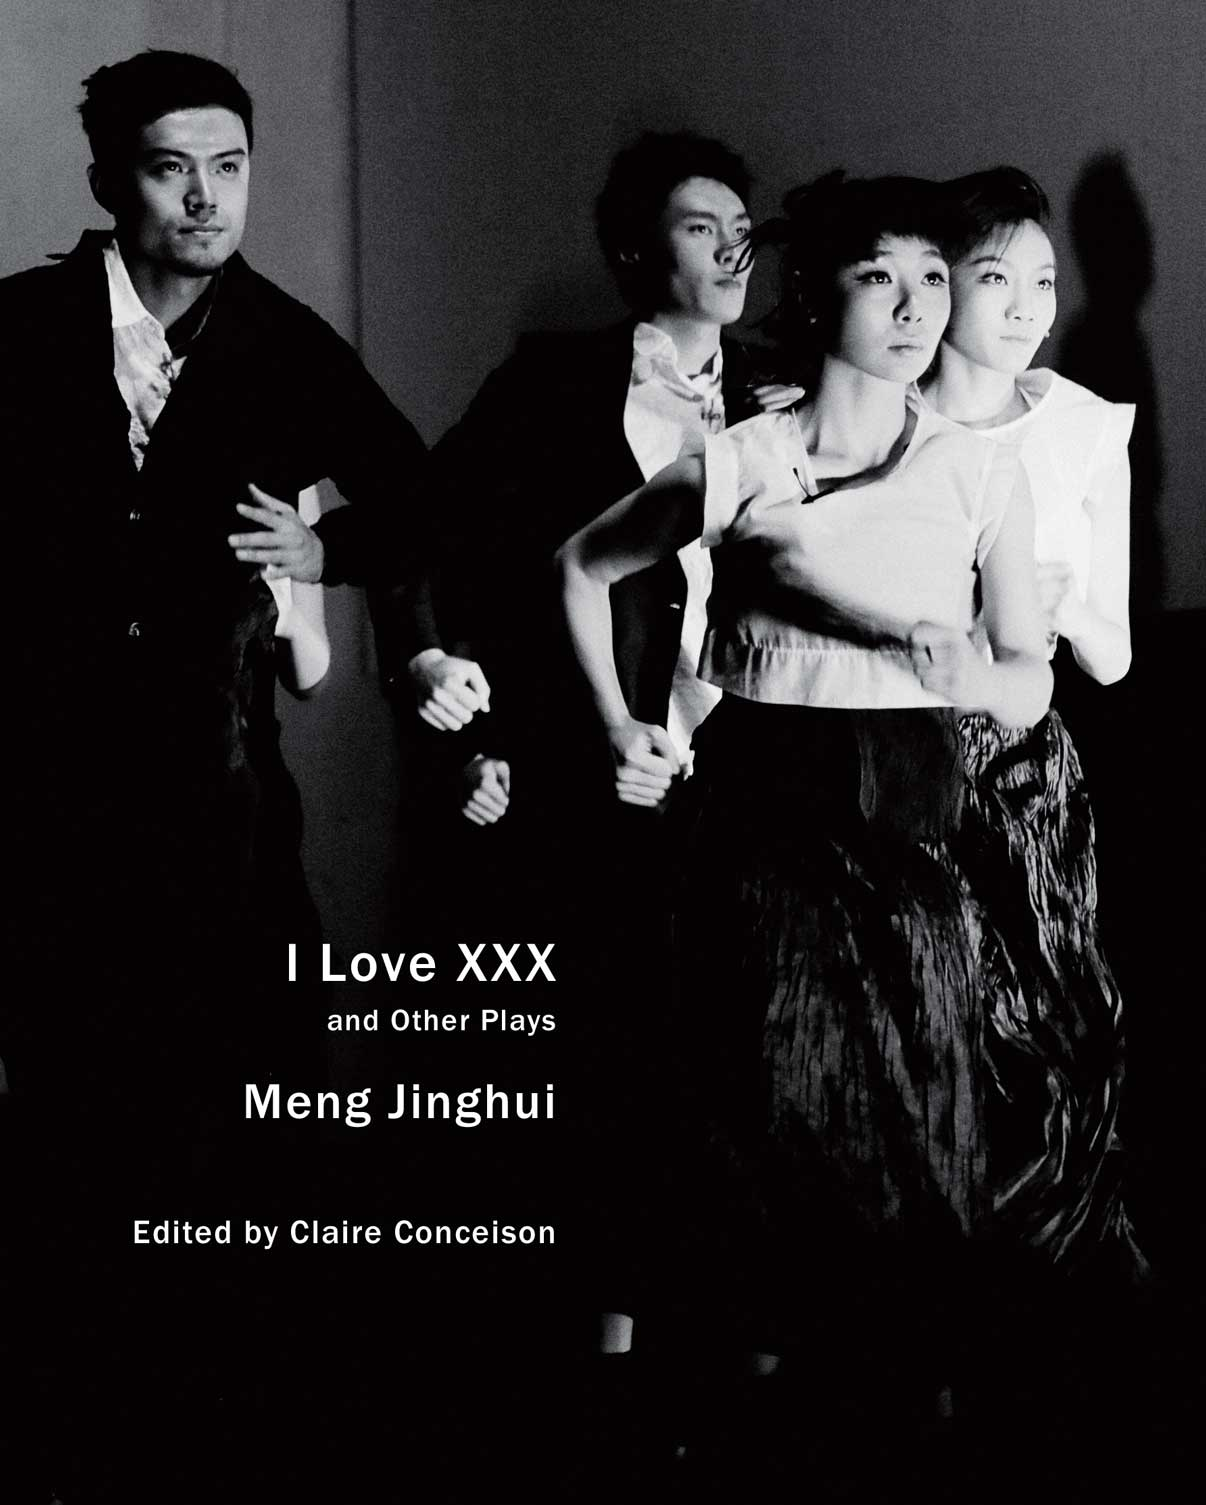 I Love XXX: and Other Plays by Meng Jinghui | Seagull Books